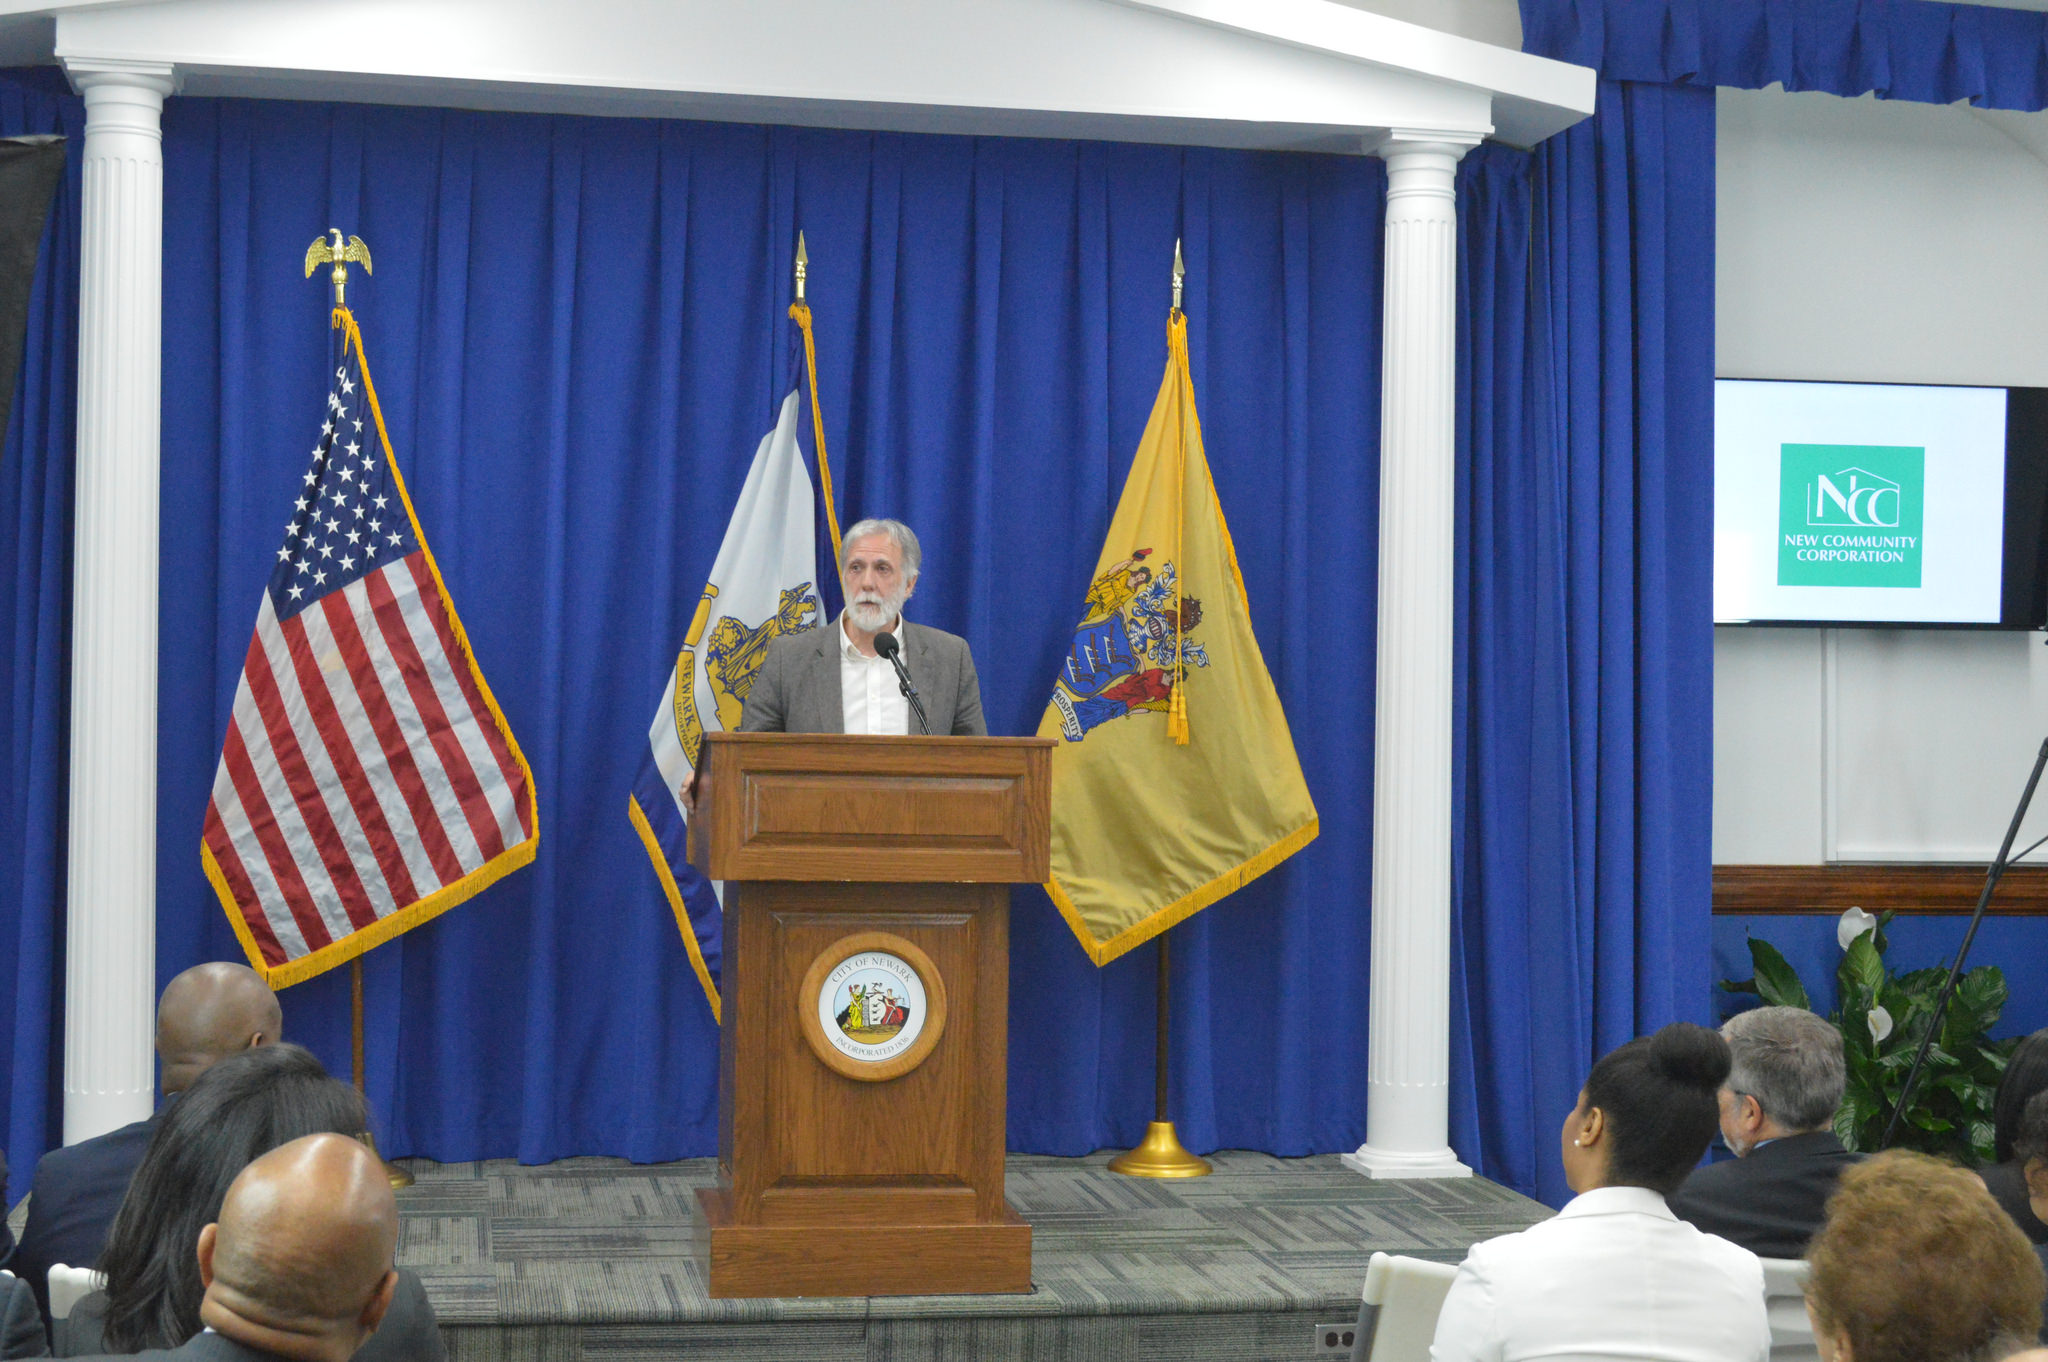 NCC Joins Newark 2020 Initiative To Reduce City Unemployment